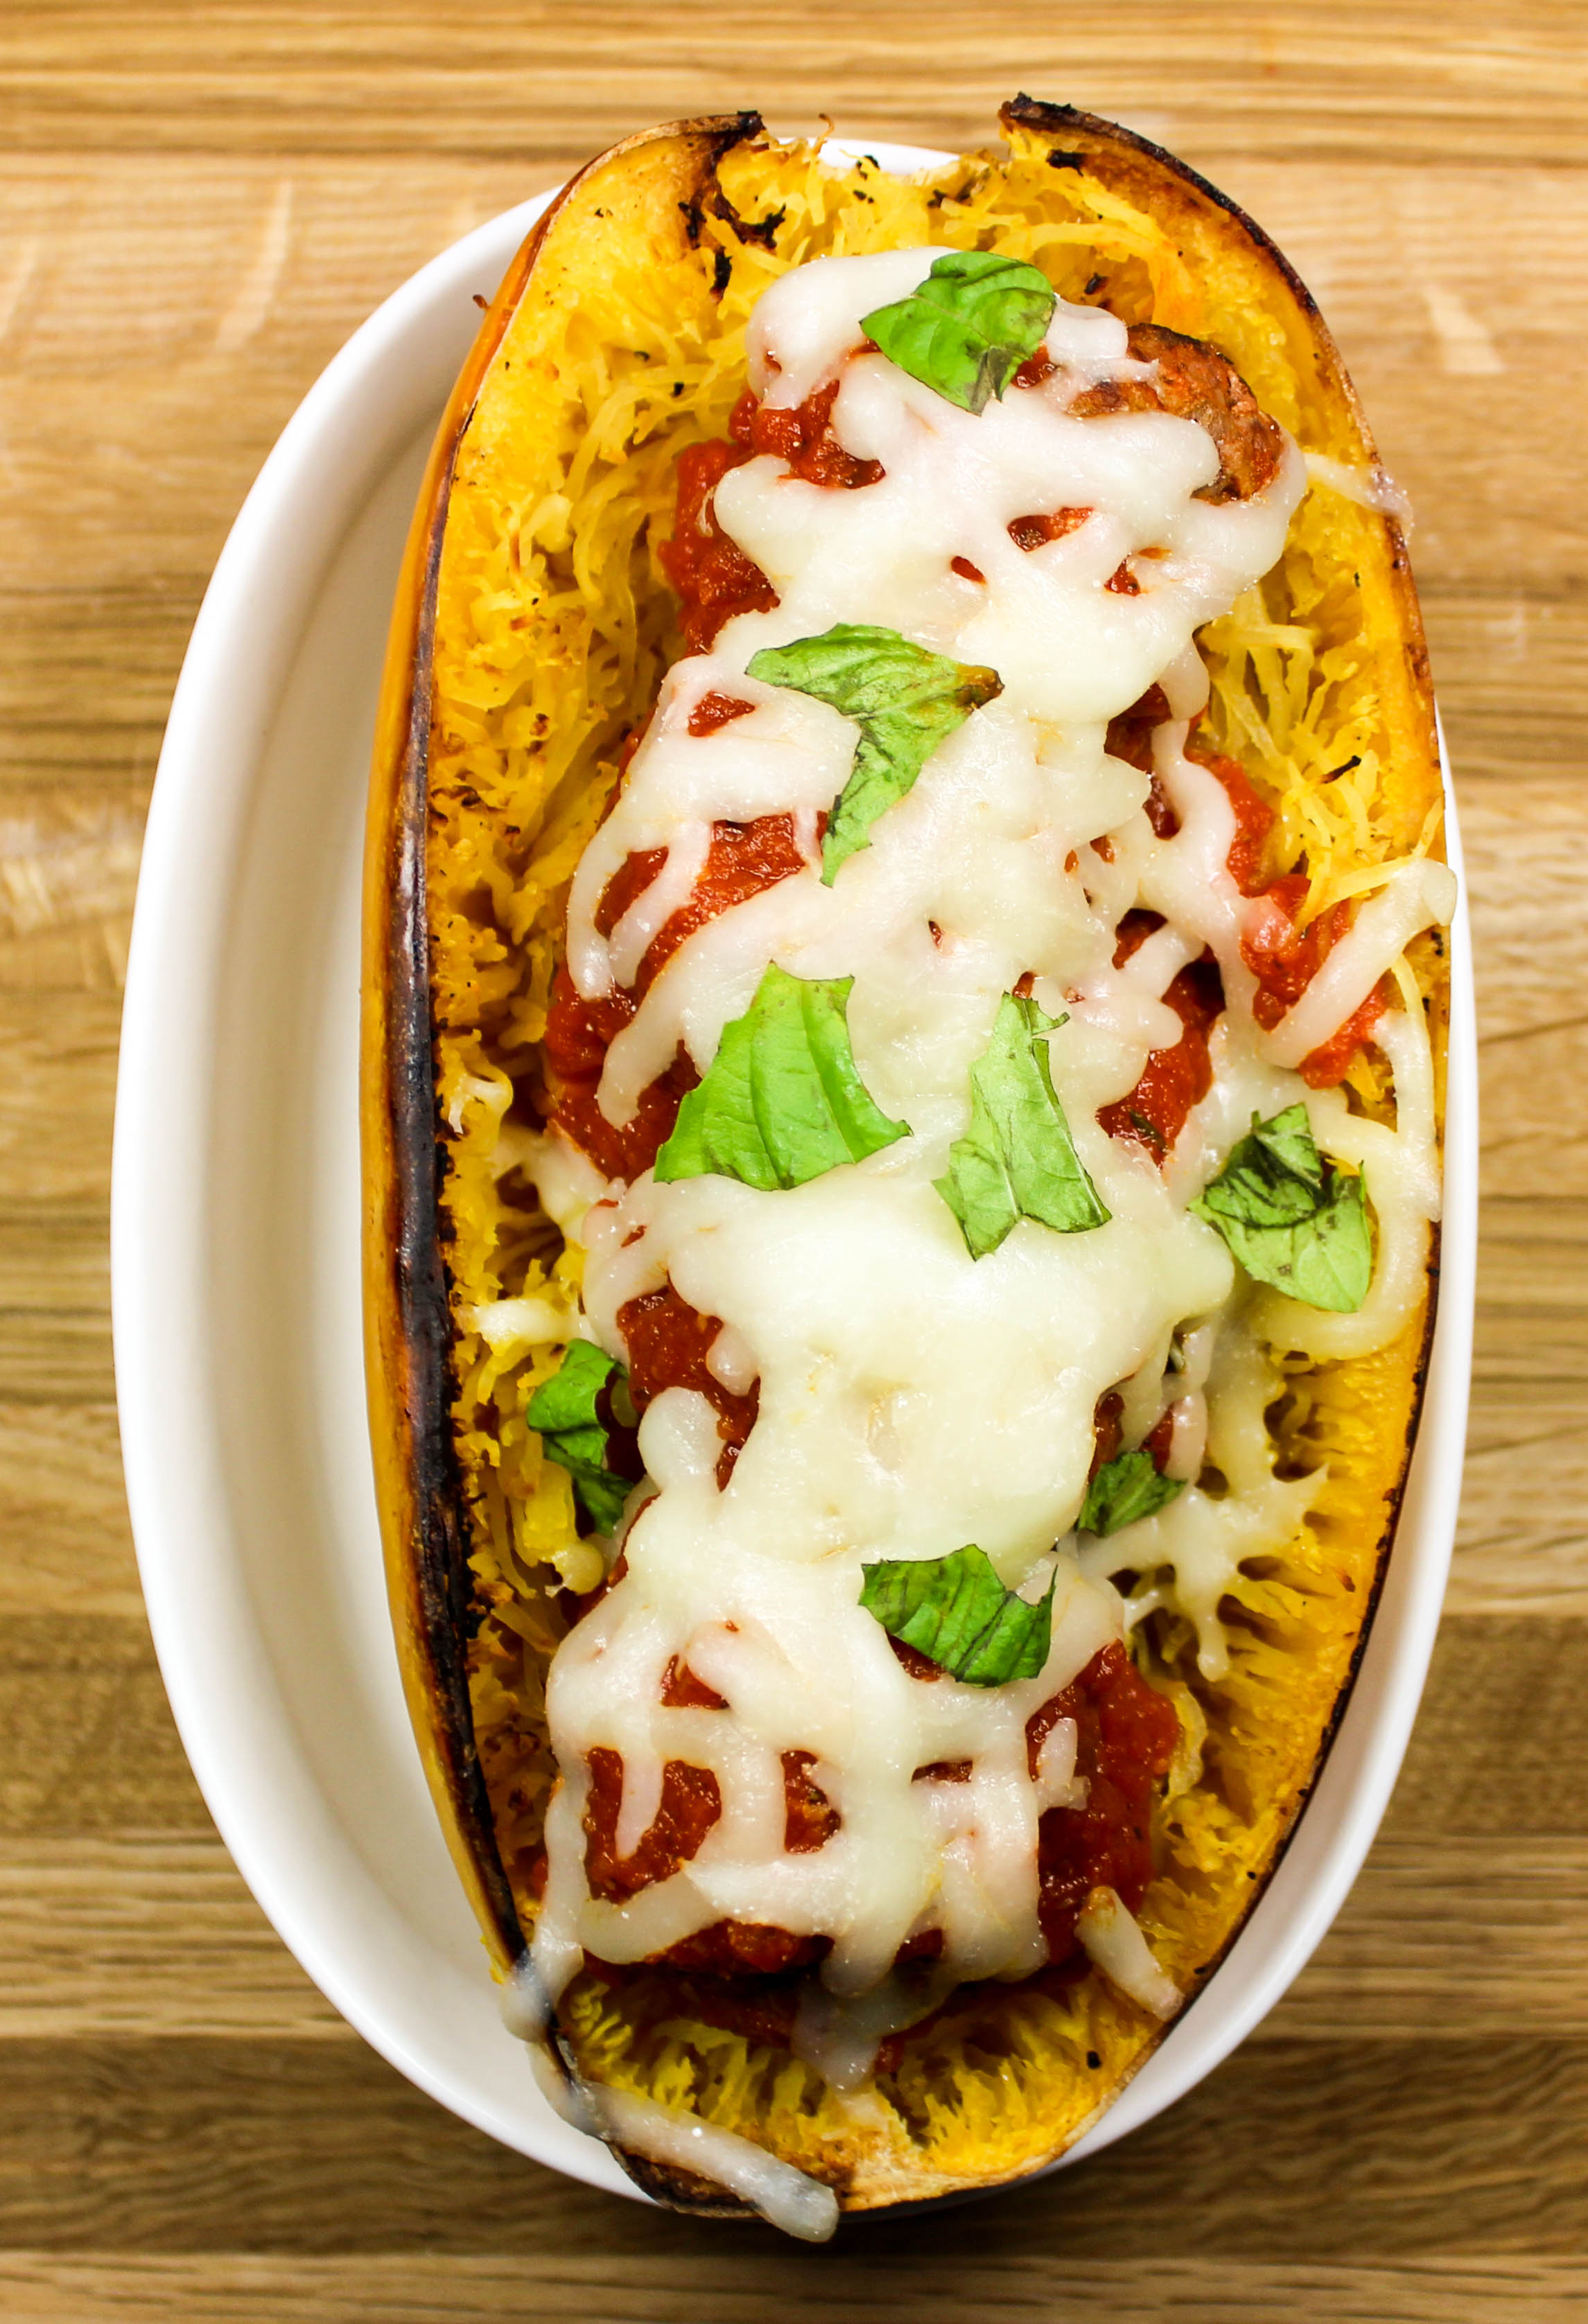 Meatball Stuffed Spaghetti Squash is spaghetti and meatballs without the guilt. Juicy meatballs, stuffed in spaghetti squash, topped with fresh marinara sauce and cheese. Weight Watchers friendly recipe. www.bitesofflavor.com